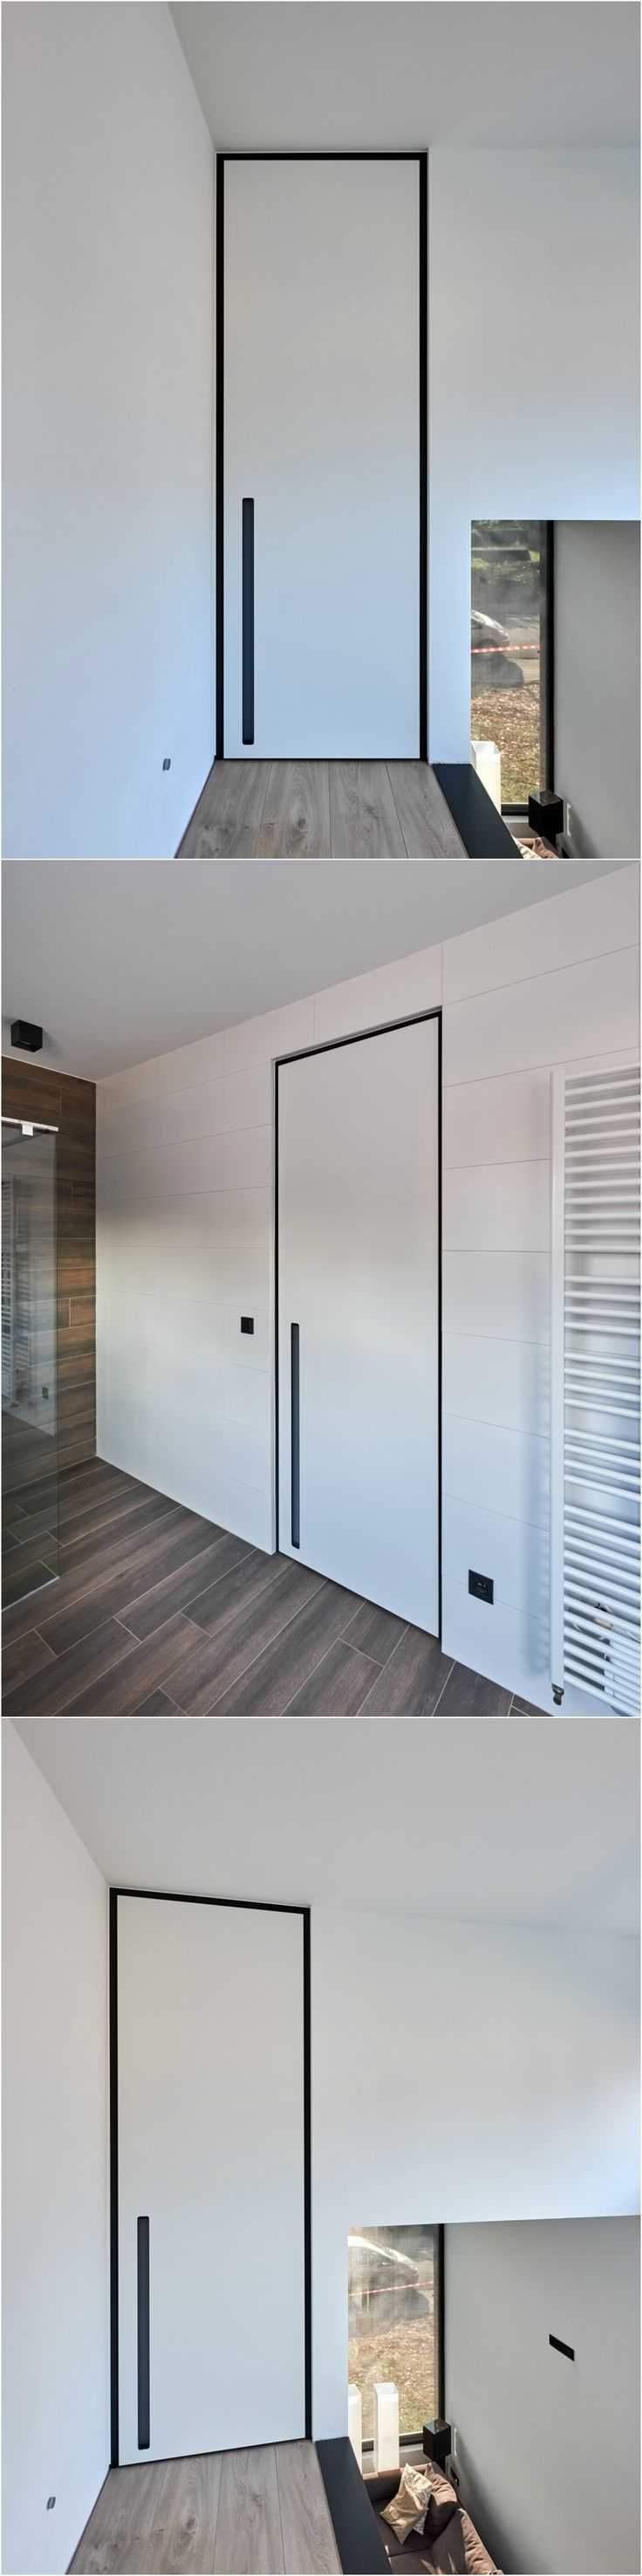 Best 25 Modern Interior Doors Ideas On Pinterest Interior White Interior  Door From Floor To Ceiling